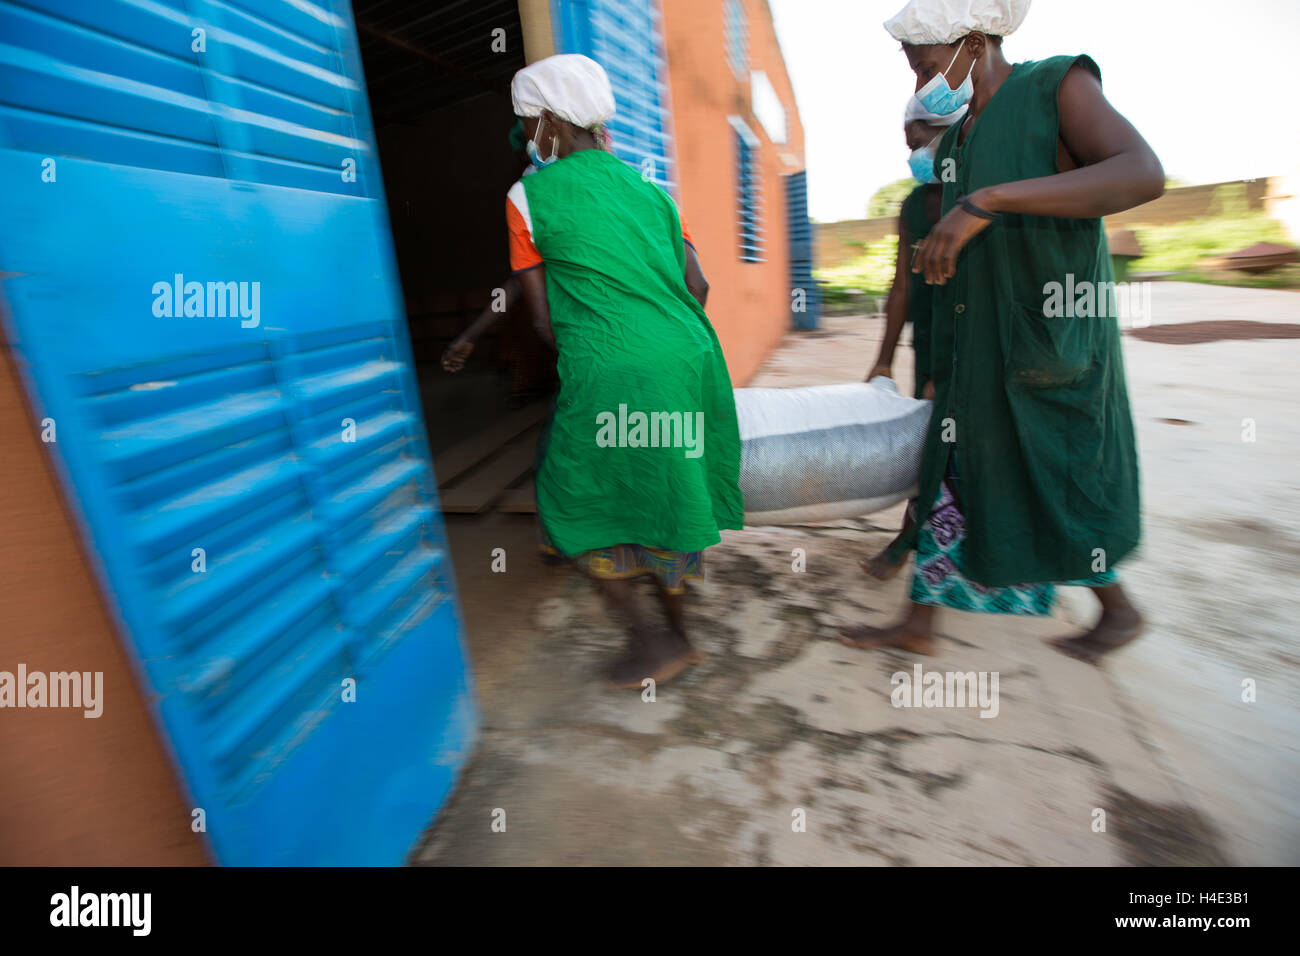 Bags of shea nuts are unloaded at a warehouse for shea butter production in Réo Burkina Faso, West Africa. Stock Photo